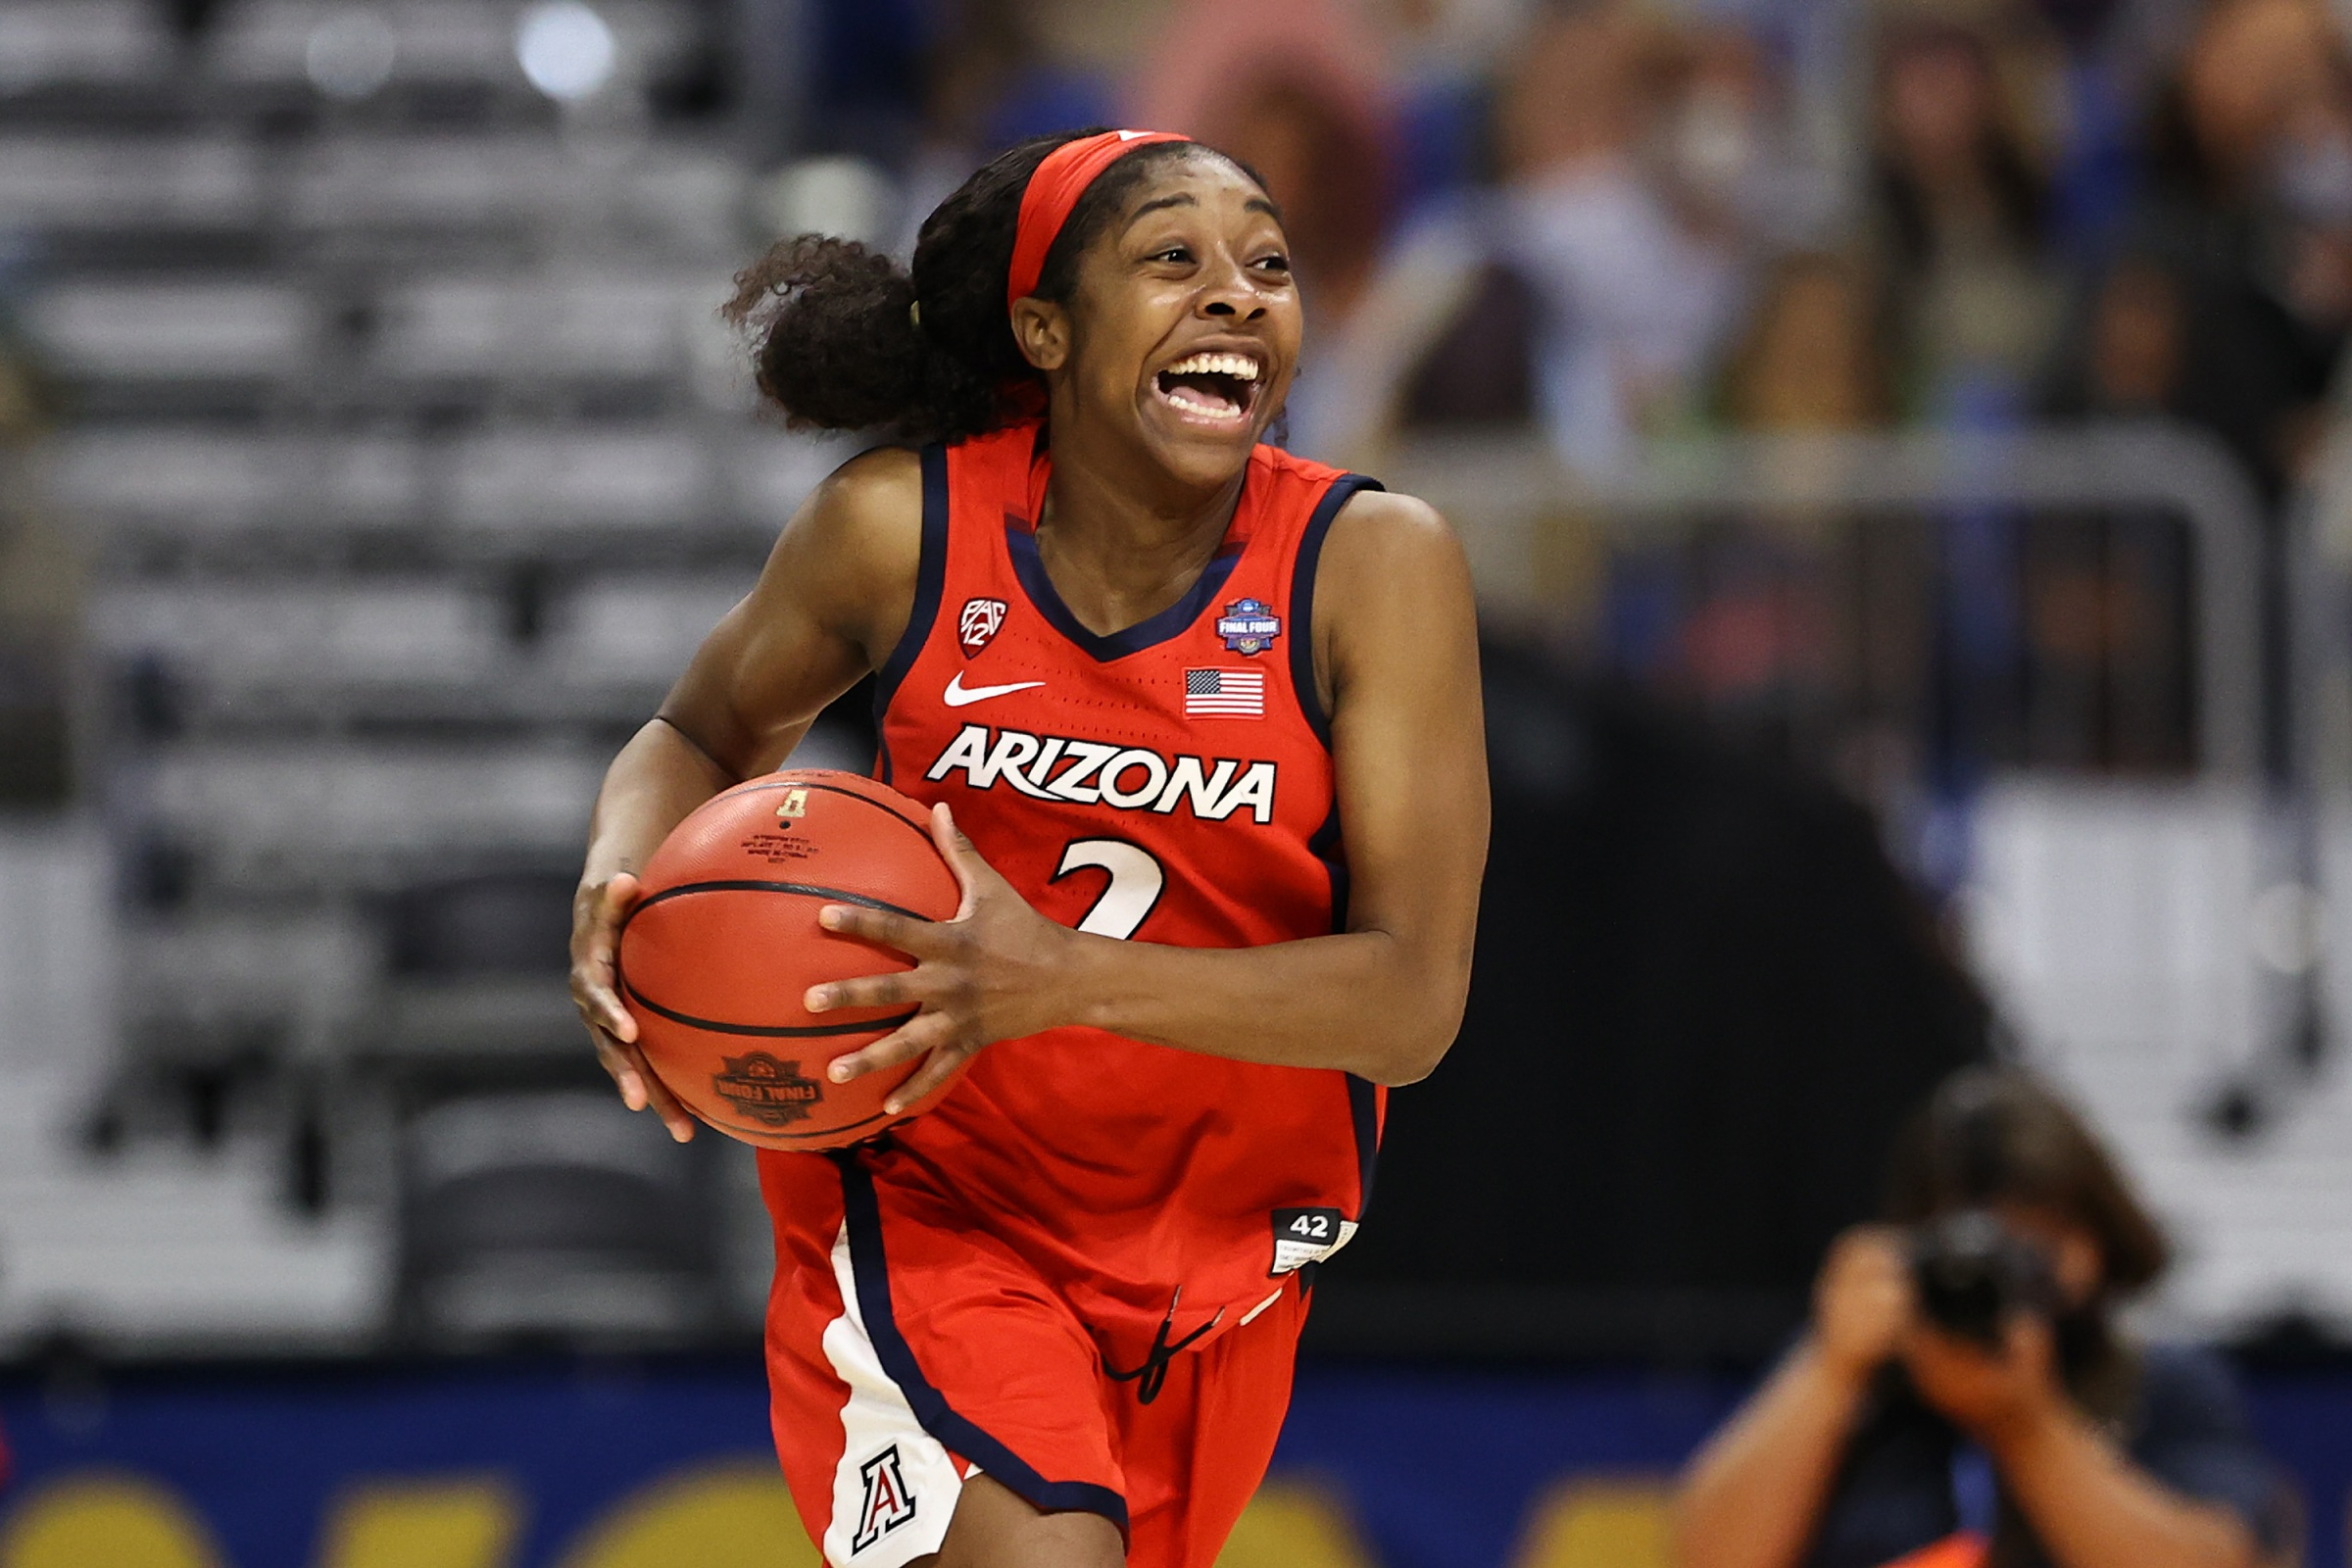 Aari McDonald #2 of the Arizona Wildcats celebrates after defeating the UConn Huskies during the third quarter in the Final Four semifinal game of the 2021 NCAA Women's Basketball Tournament at the Alamodome on April 02, 2021 in San Antonio, Texas. (